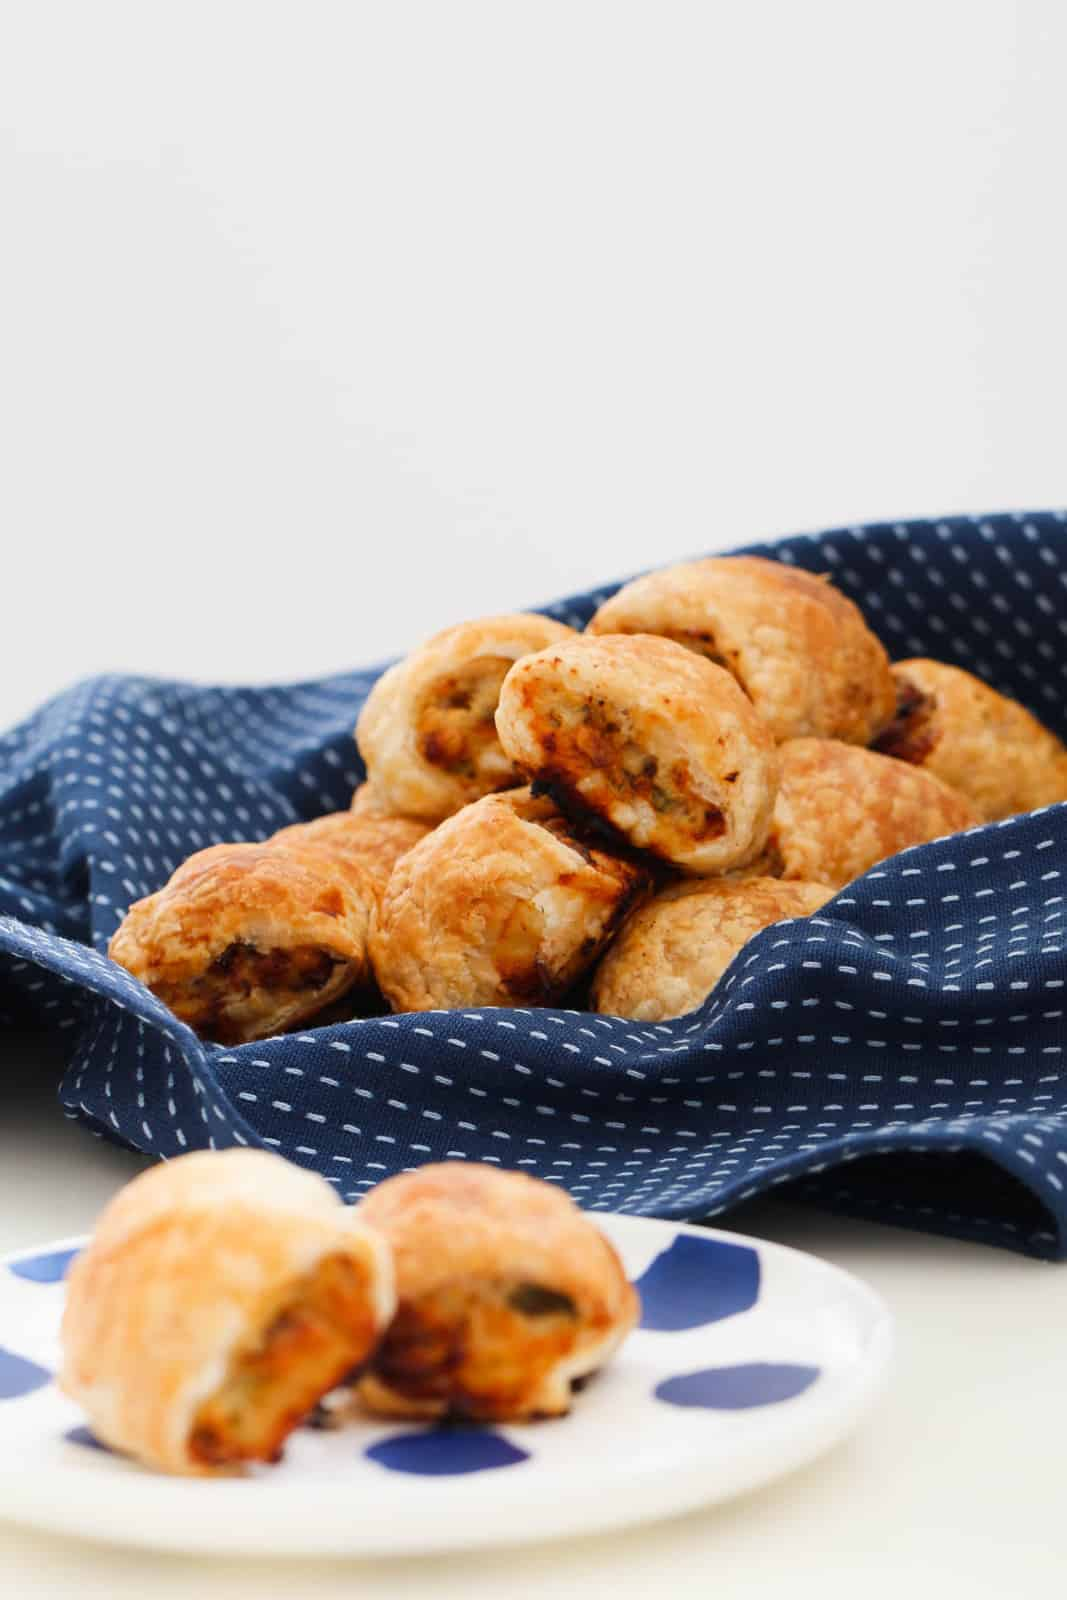 A batch of homemade chicken sausage rolls piled on a blue tea towel, and two served on a plate.